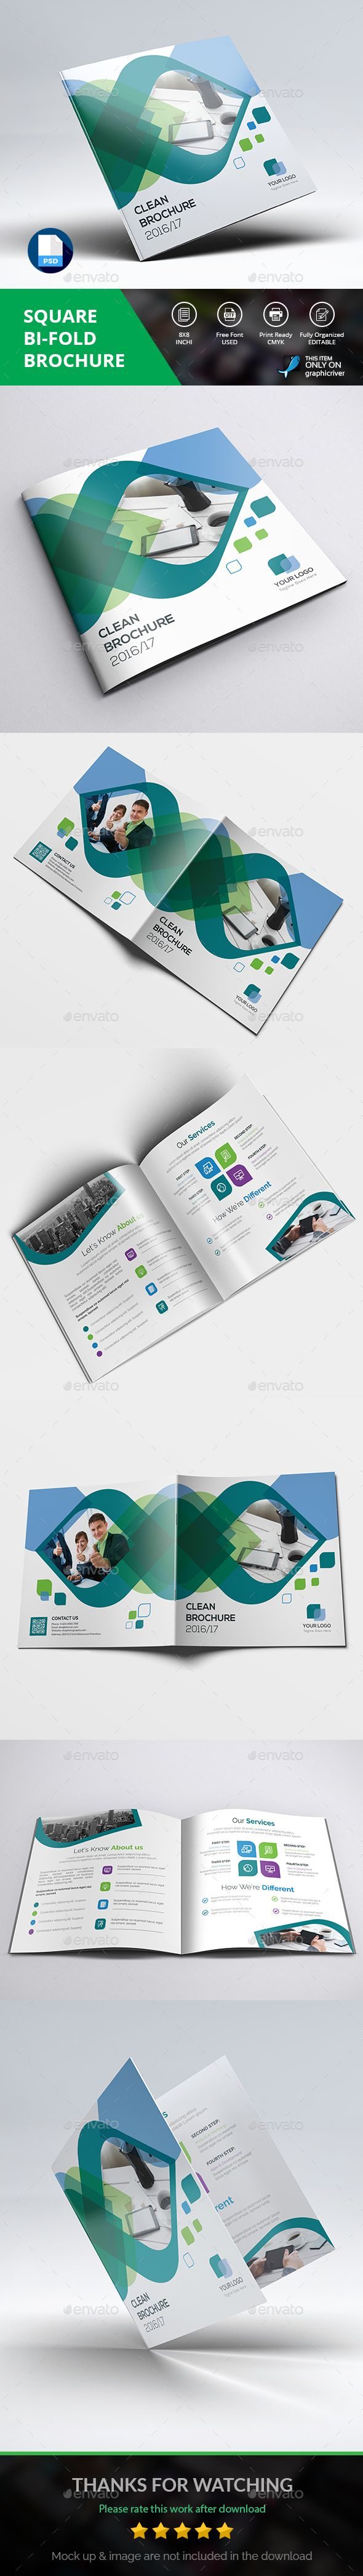 Square Brochure — Photoshop PSD #brochure template #standard • Download ➝ https://graphicriver.net/item/square-brochure/18765081?ref=pxcr